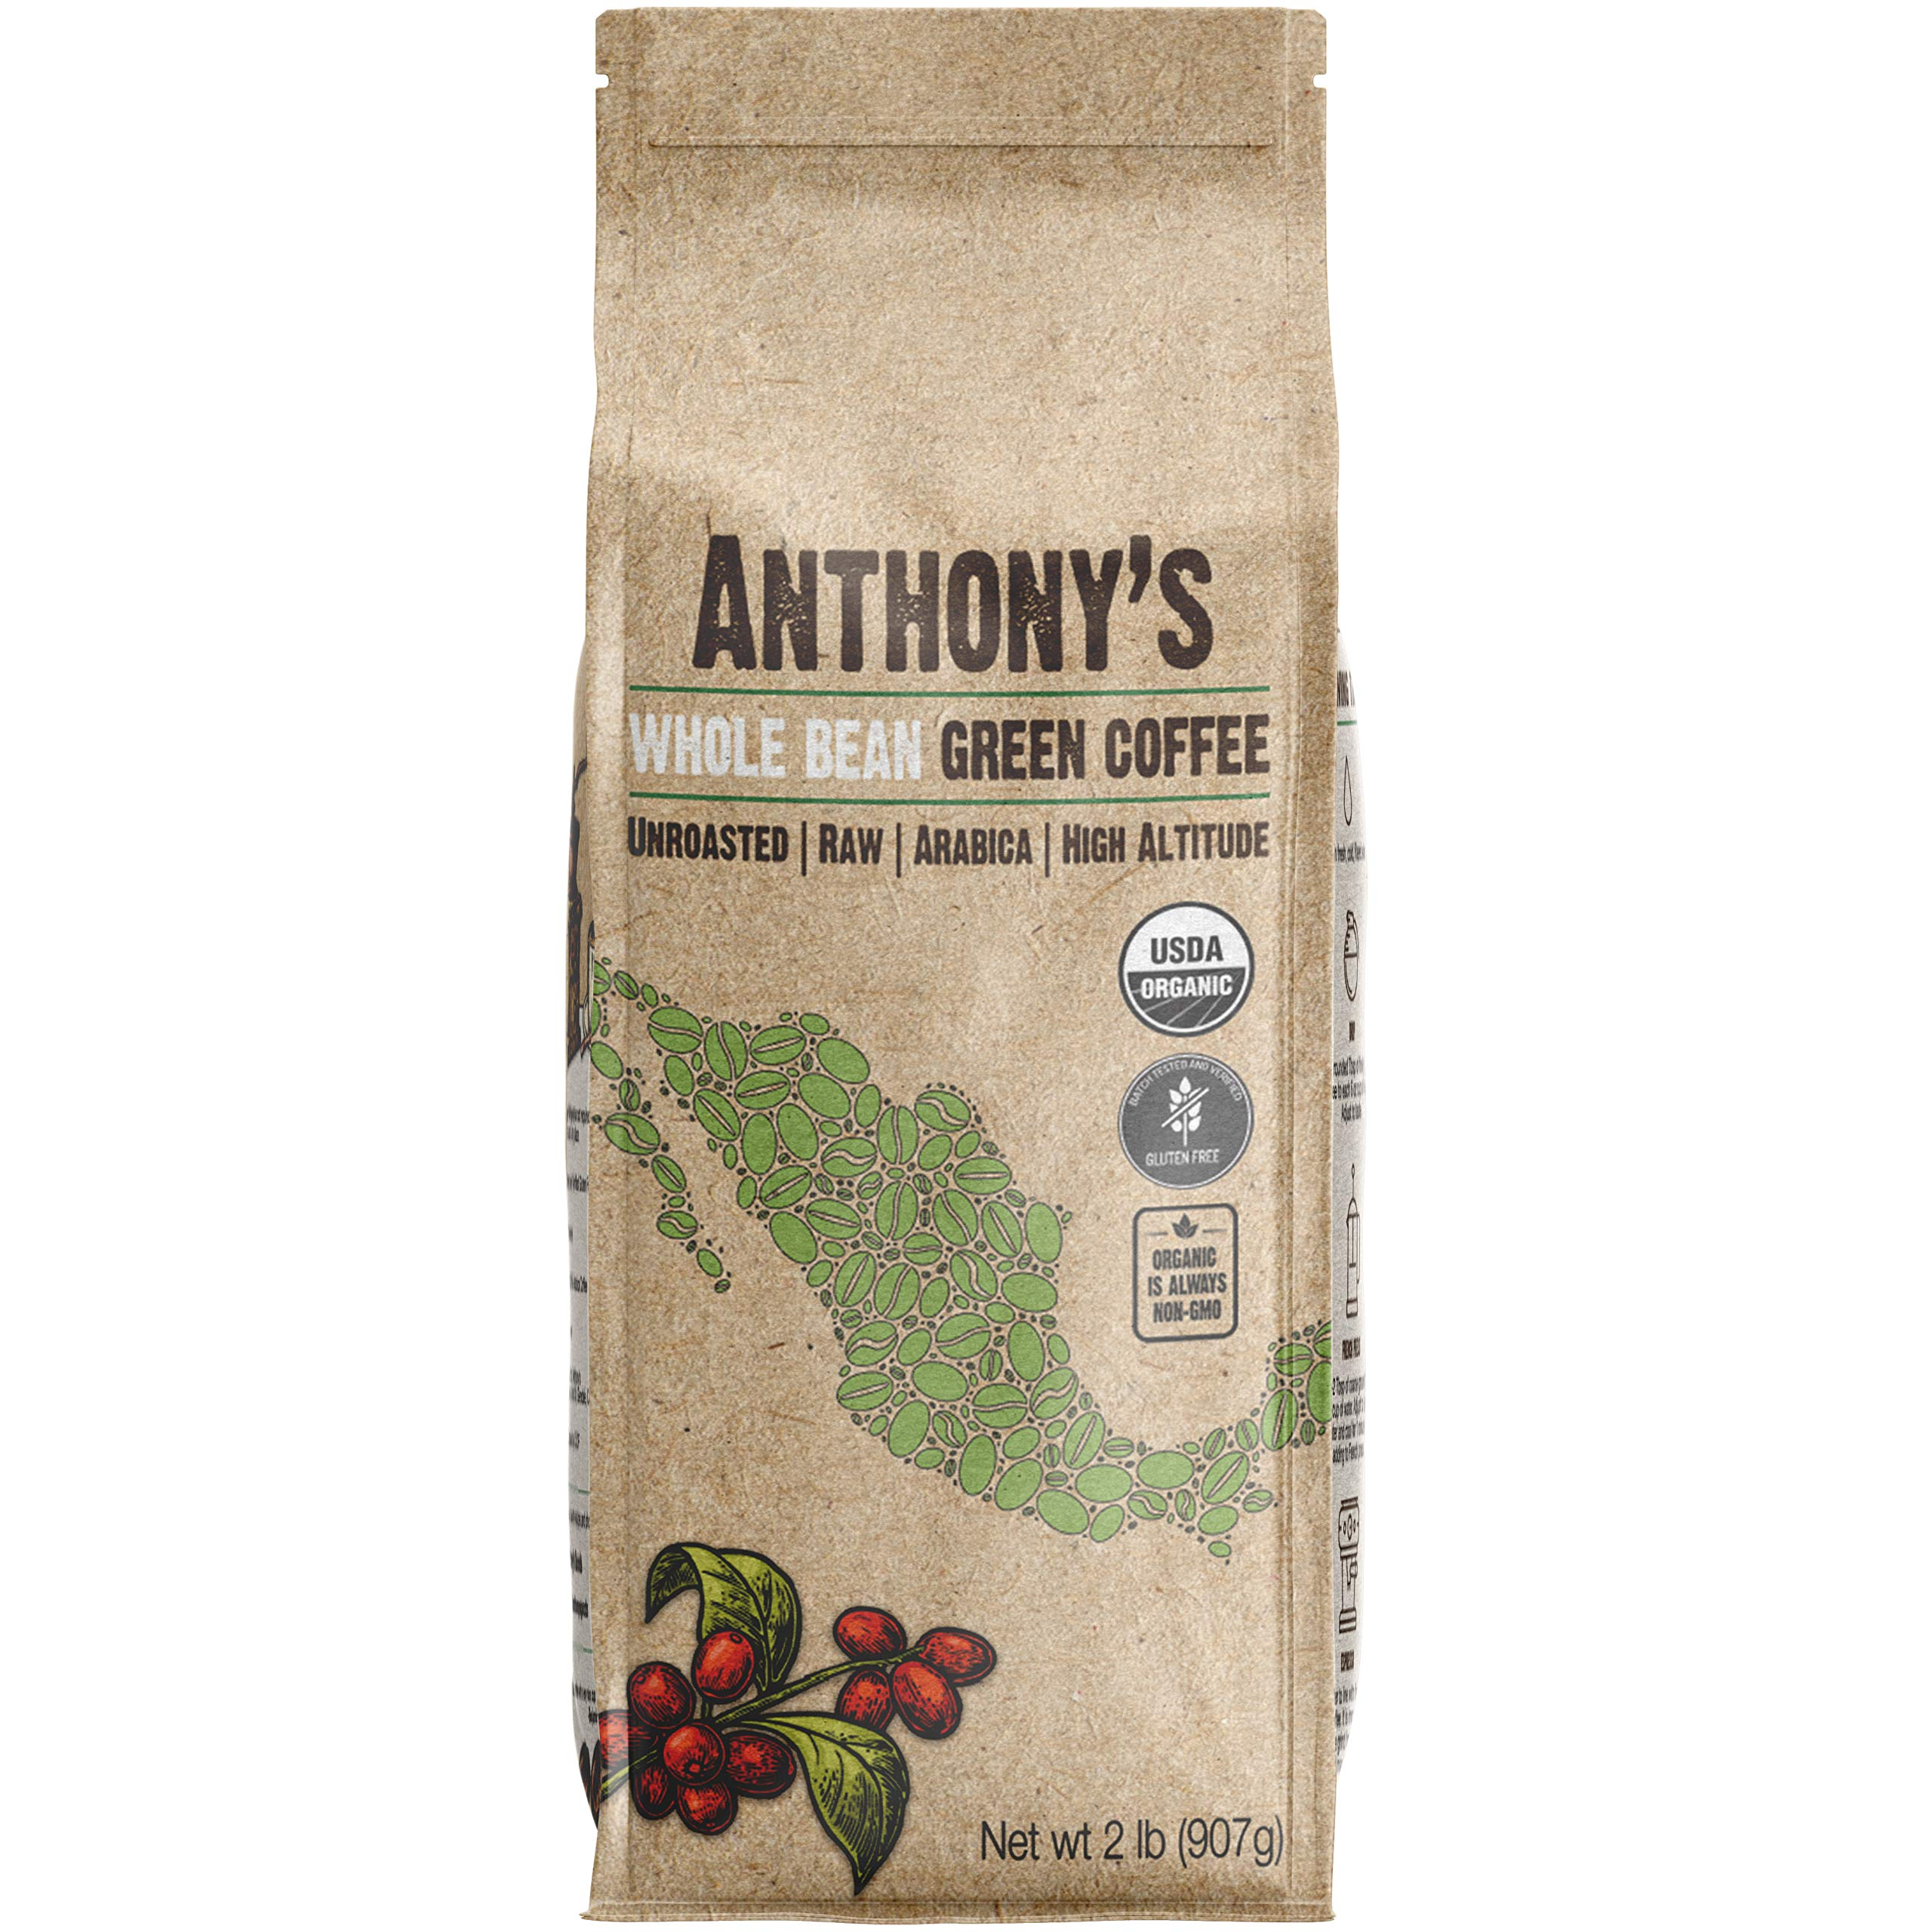 Anthony's Organic Unroasted Whole Green Coffee Beans, 2lbs, Mexican Altura Arabica Beans, Raw, Batch Tested and Gluten Free by Anthony's